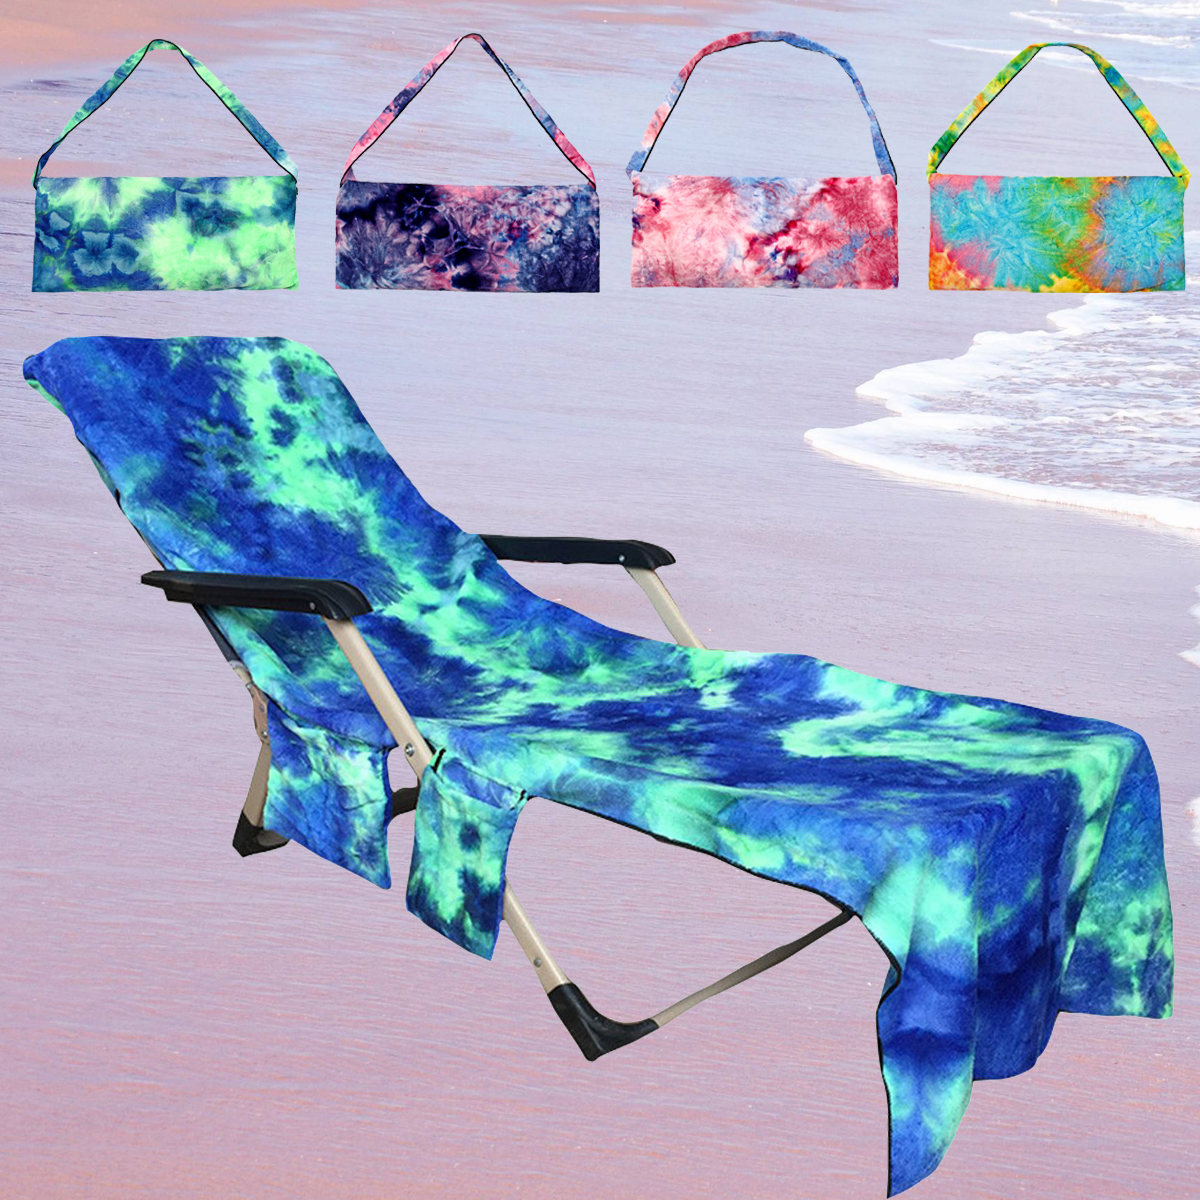 Moaere Portable Microfiber Beach Pool Sun Lounge Chair Cover Towel Bag with 2 Pocket